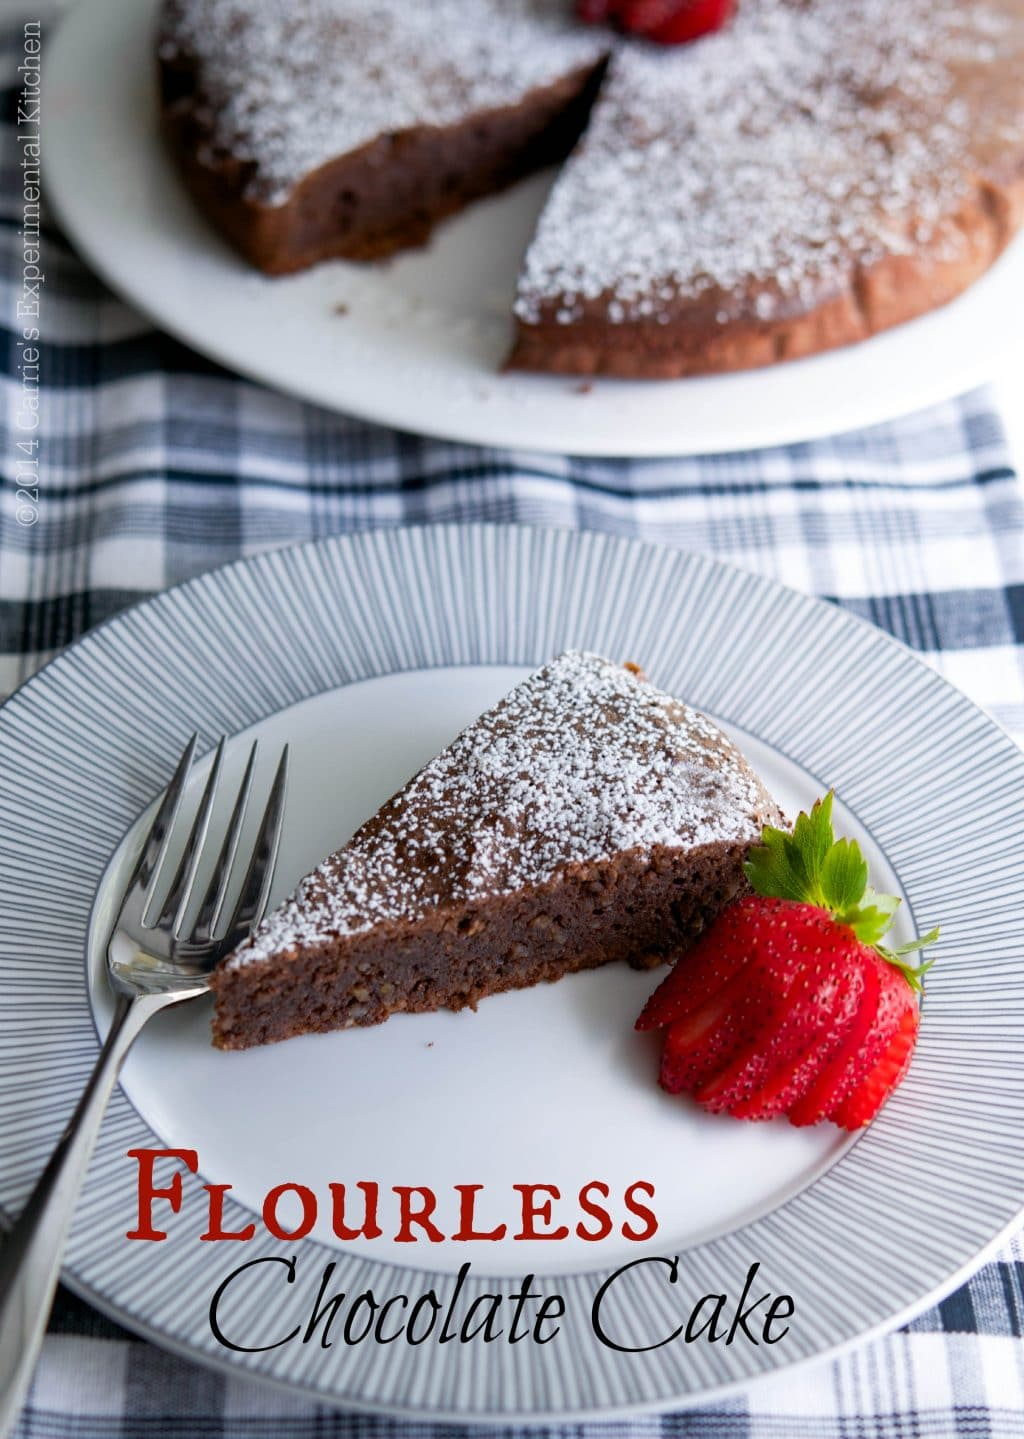 This Flourless Chocolate Cake is decadent and rich, just like a brownie and perfect for those following a gluten-free lifestyle.